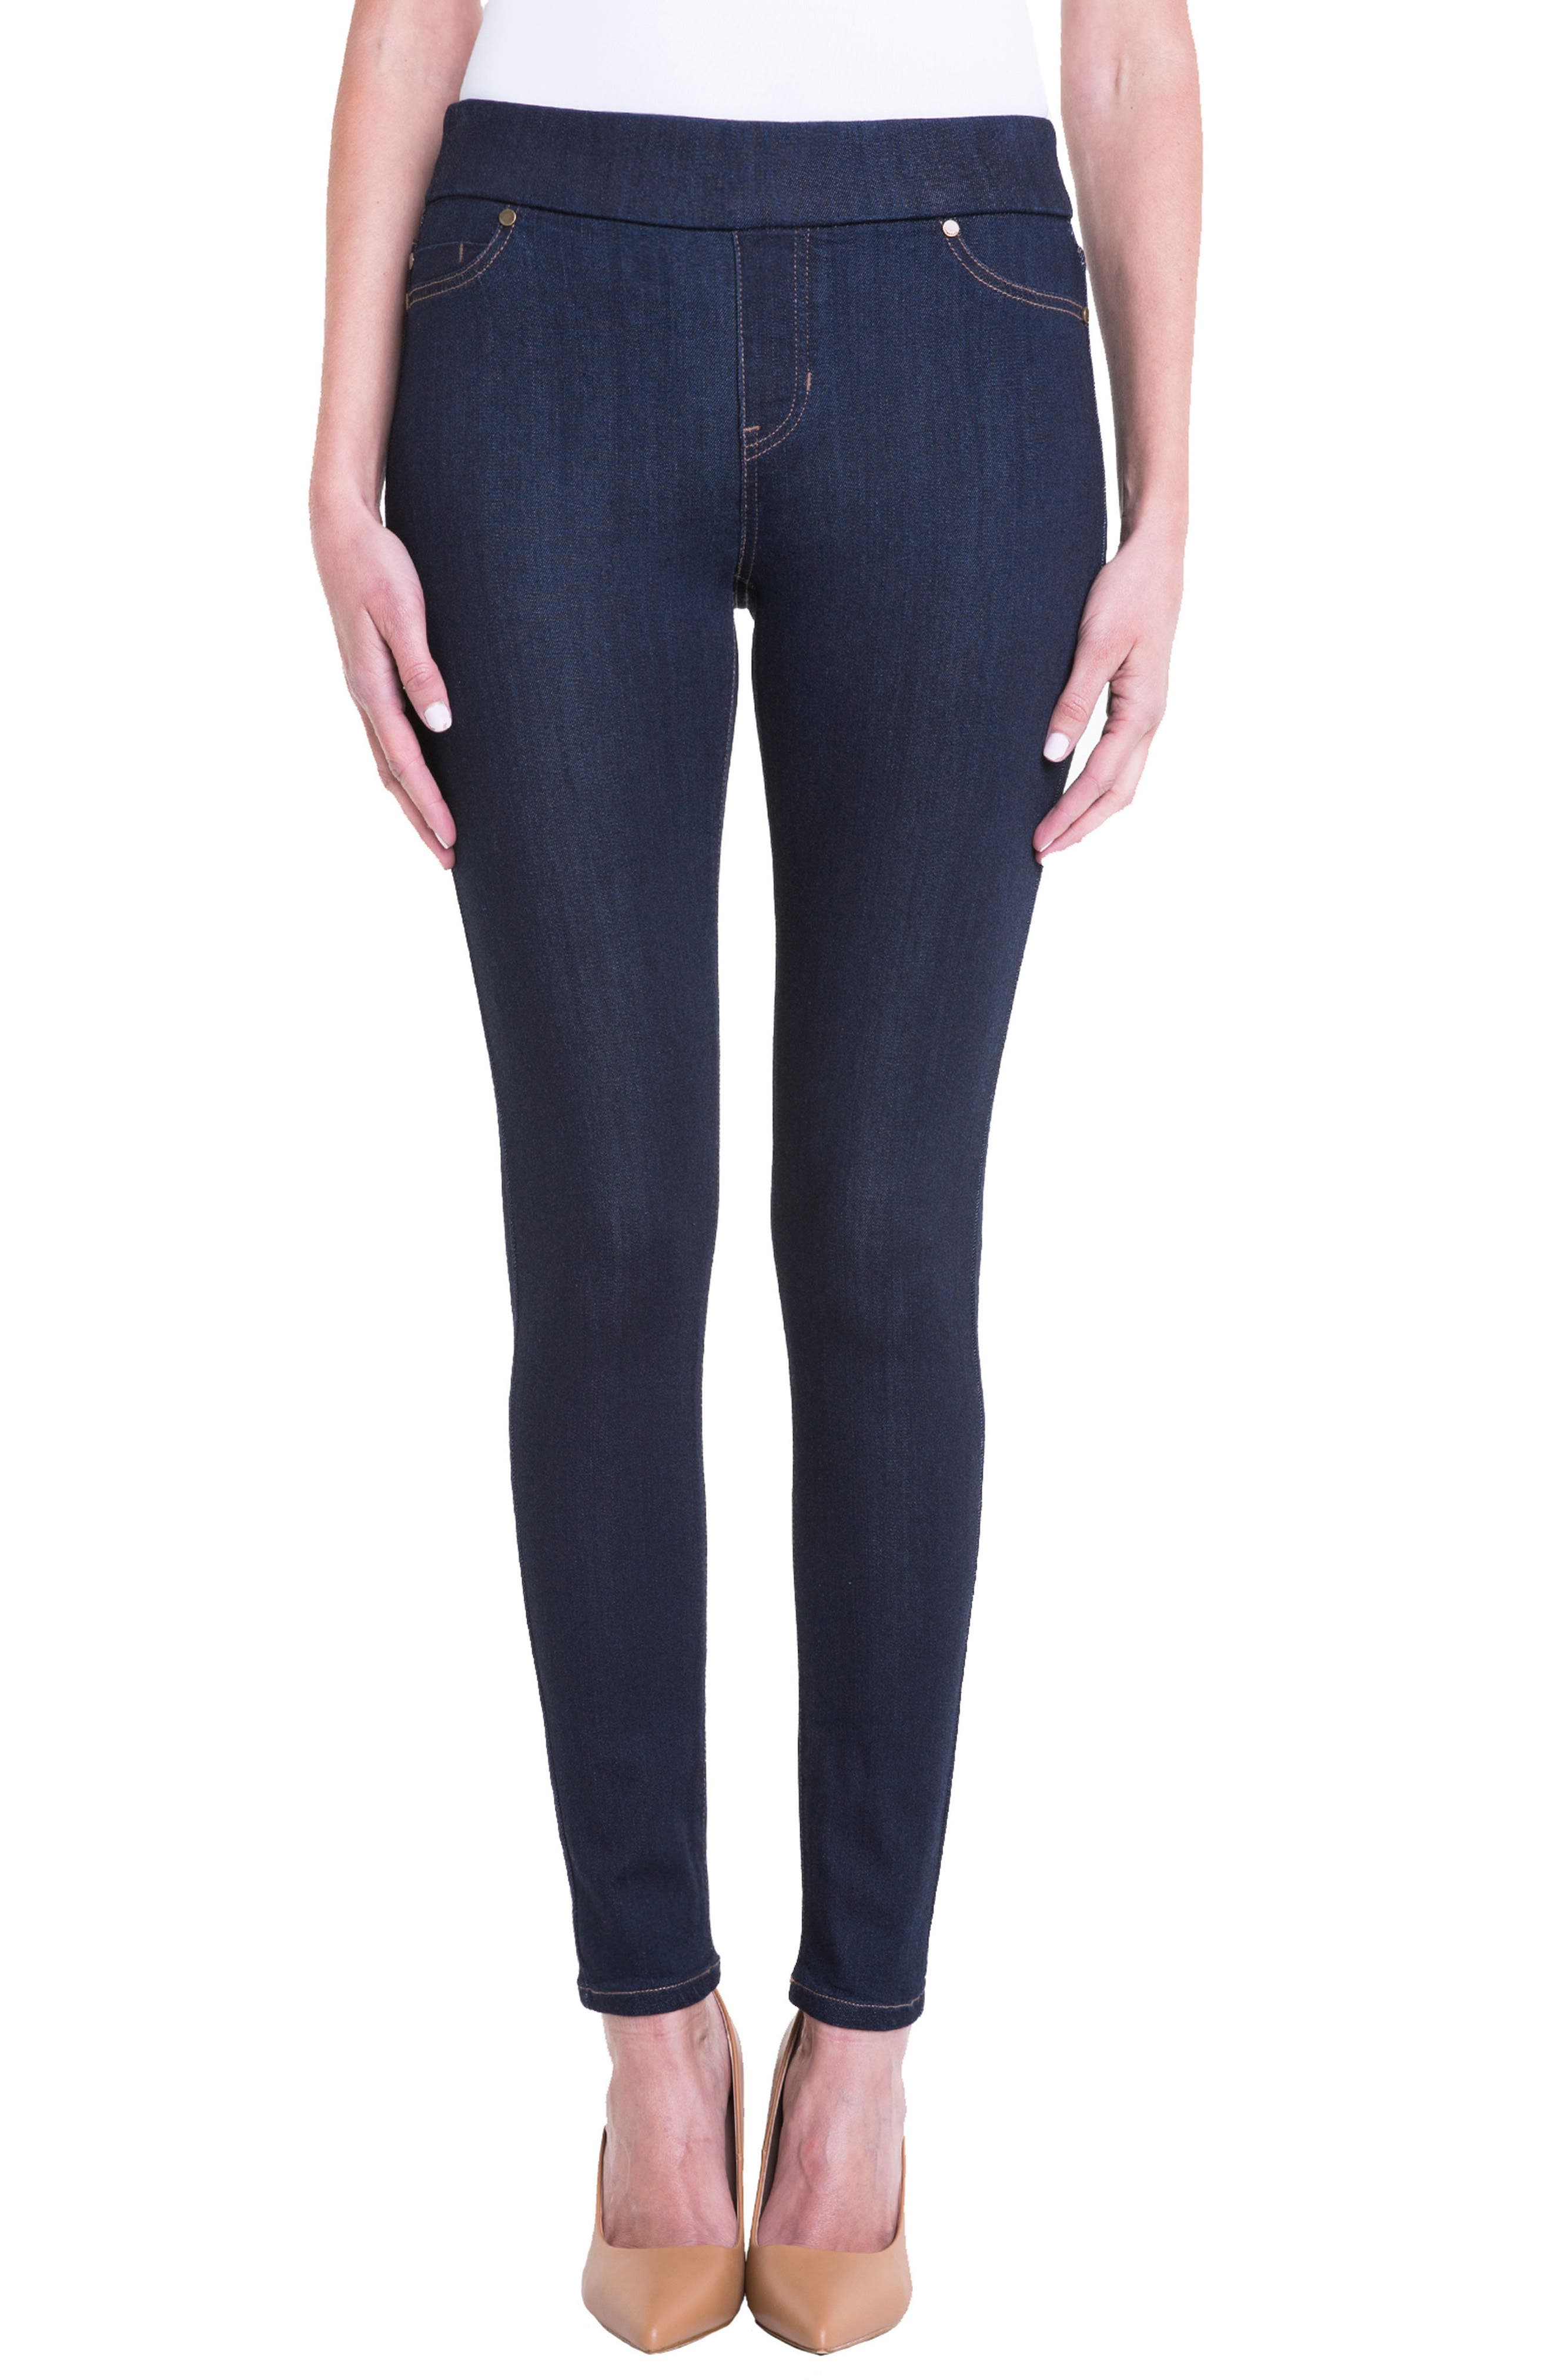 Sienna Pull-On Knit Denim Leggings,                             Main thumbnail 1, color,                             INDIGO RINSE